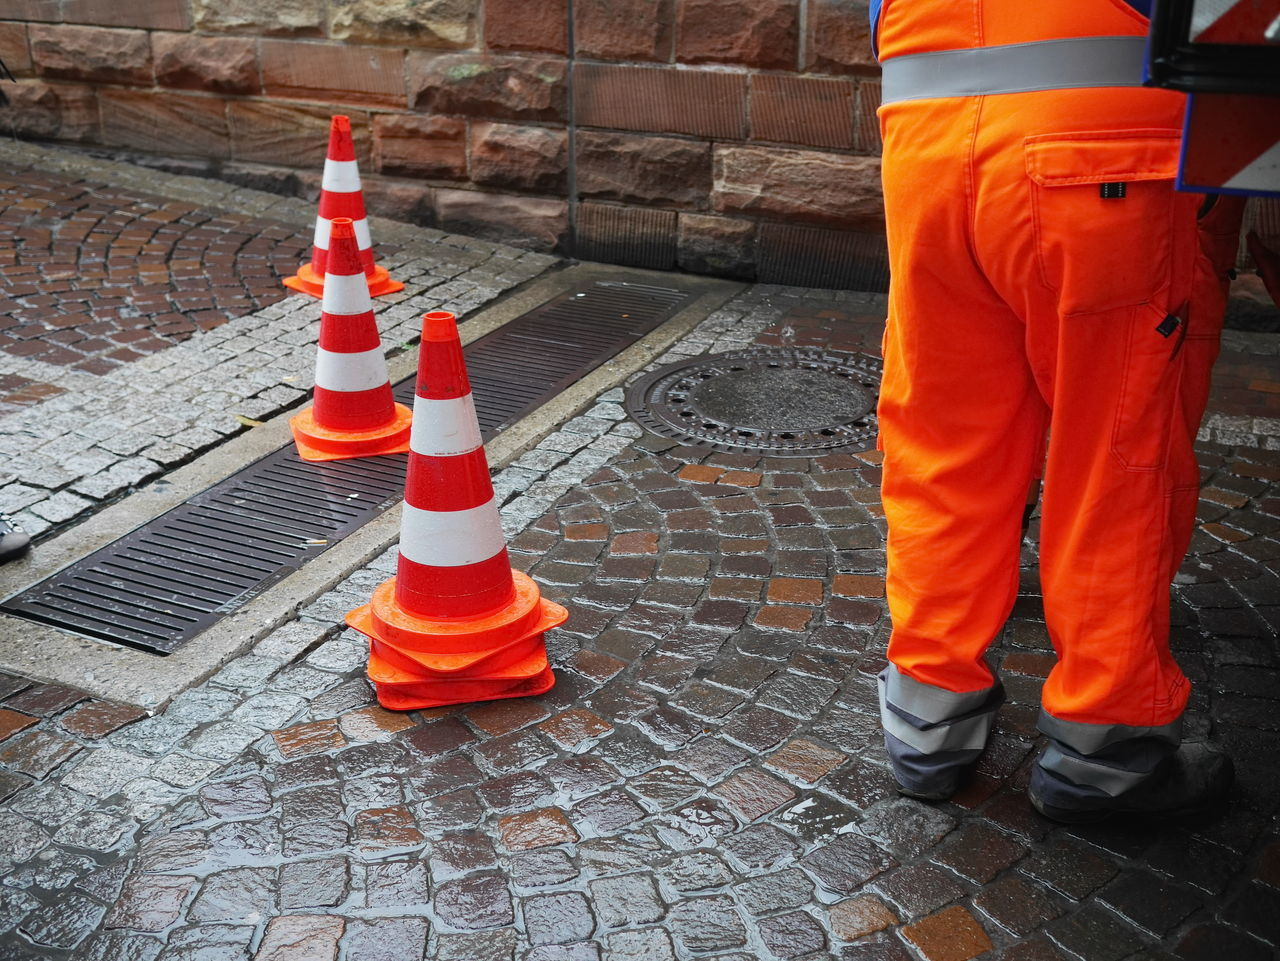 Adult Adults Only Day Human Body Part Low Section Men Occupation One Man Only One Person Outdoors People Real People Reflective Clothing Repairing Road Construction Safety Standing Traffic Cone Working